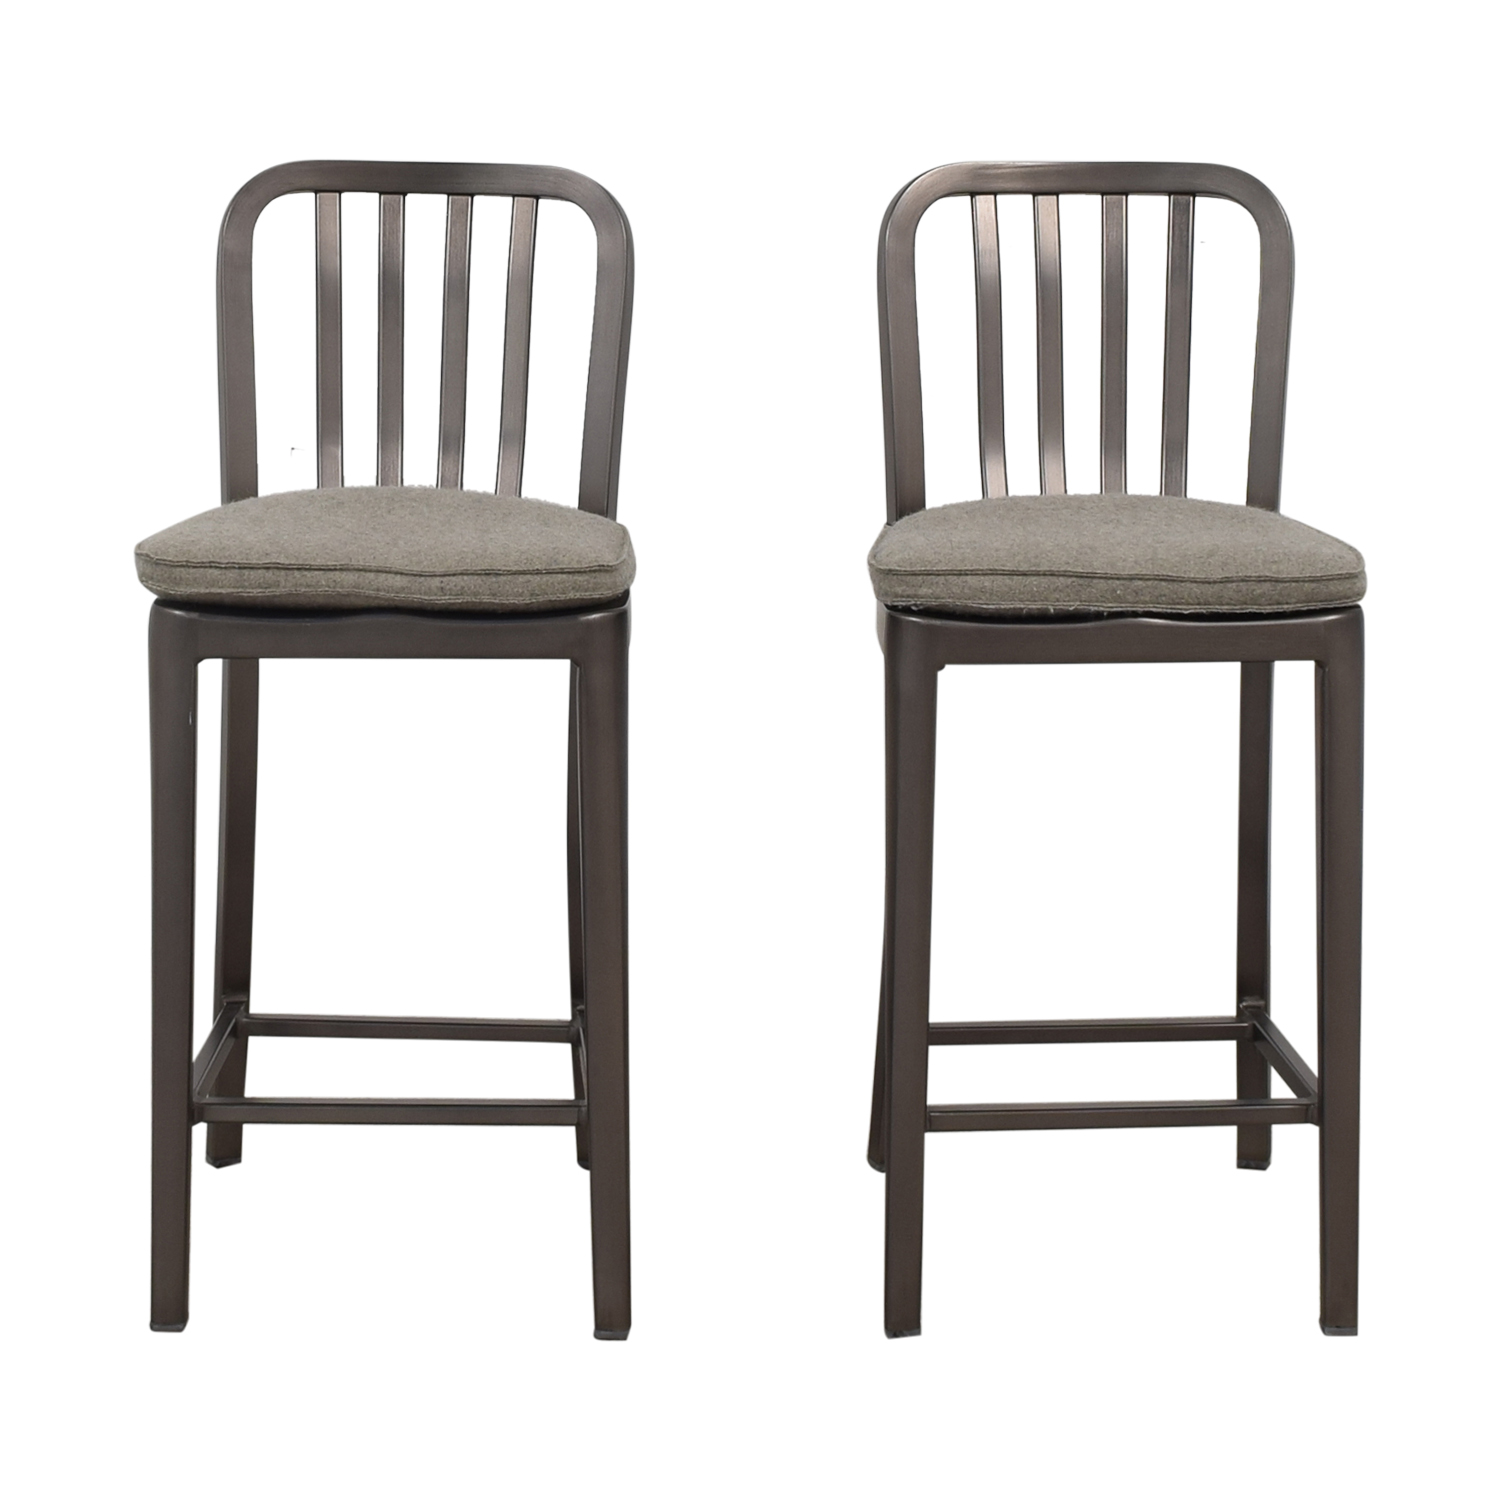 Crate & Barrel Crate & Barrel Delta Counter Stools with Cushion Stools